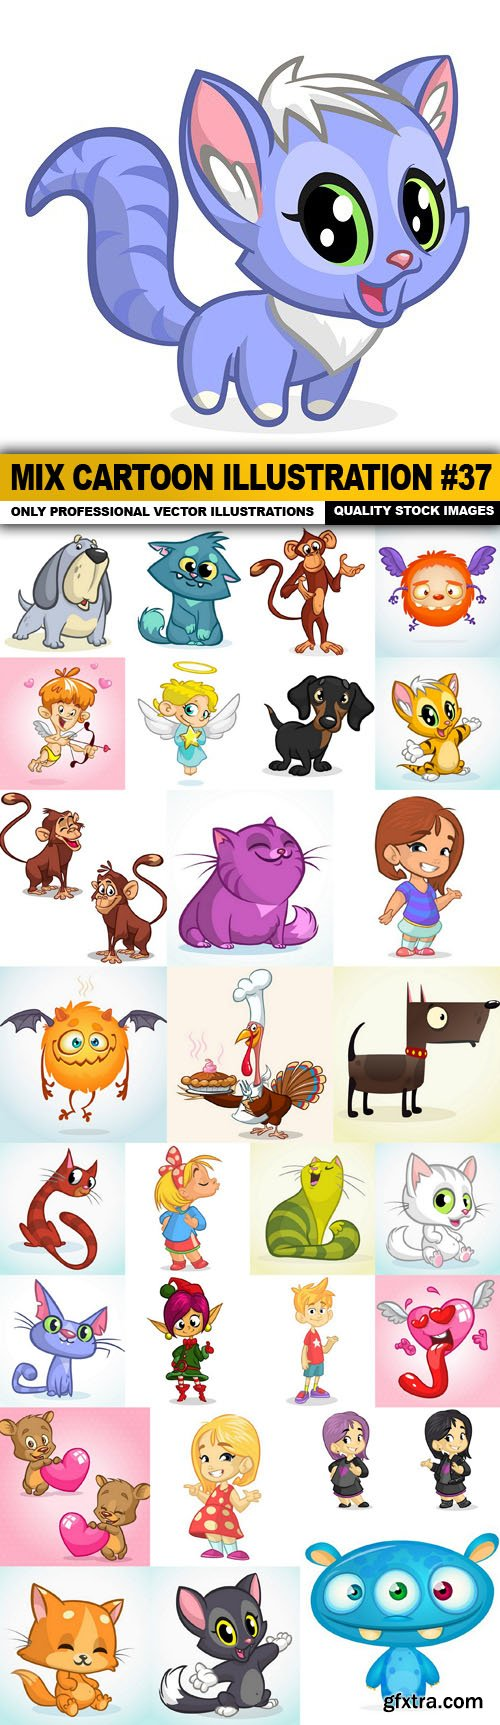 Mix cartoon Illustration #37 - 30 Vector